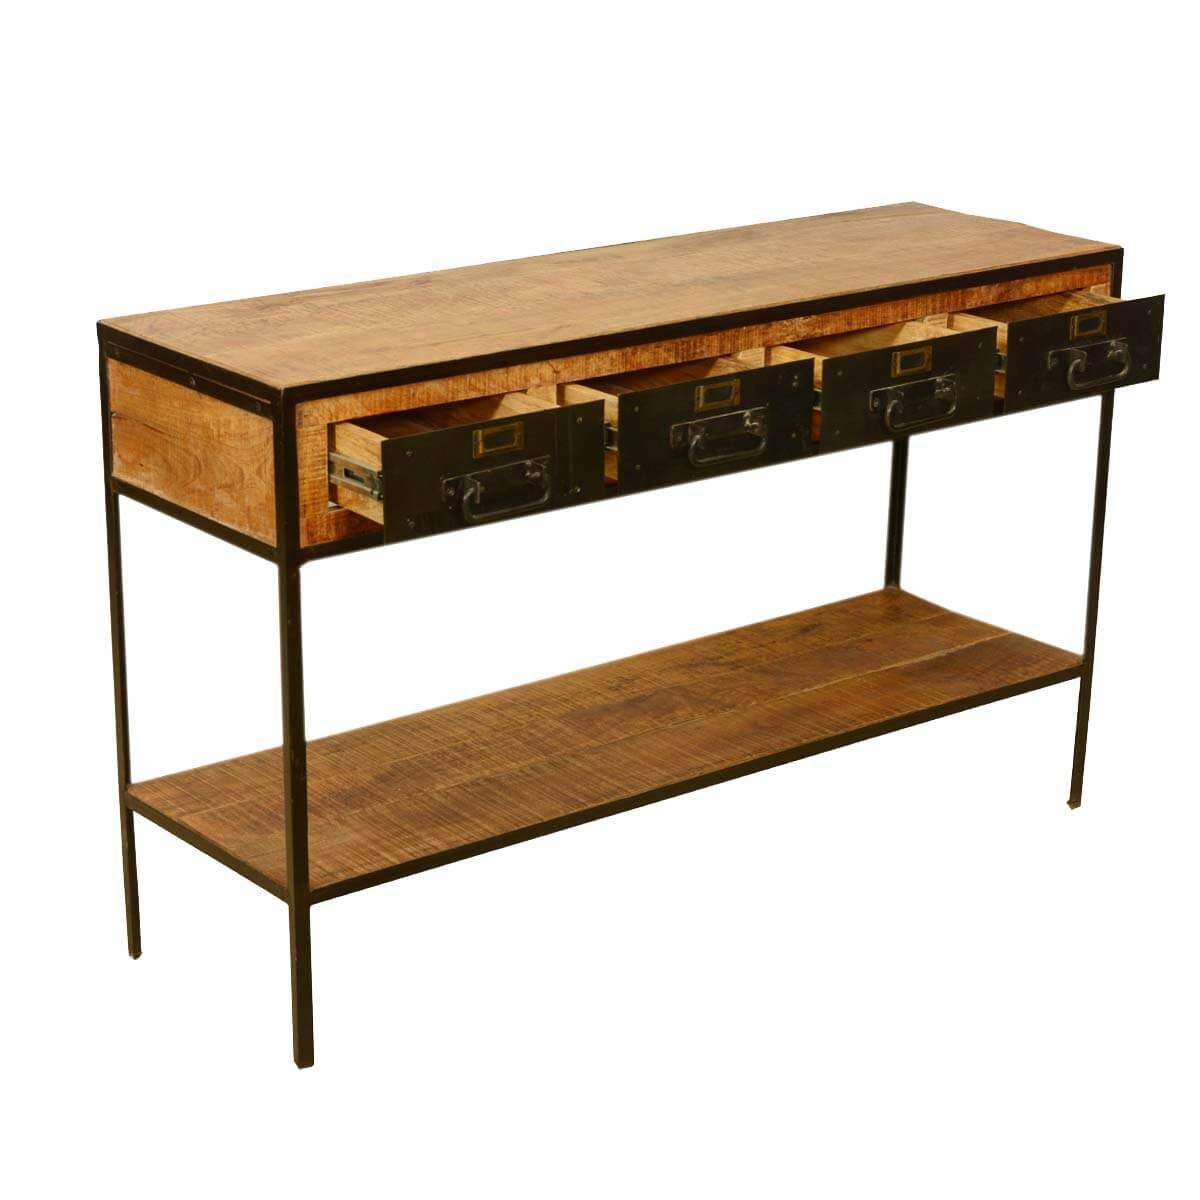 Foyer Console : Industrial iron drawer tier rustic entry way console